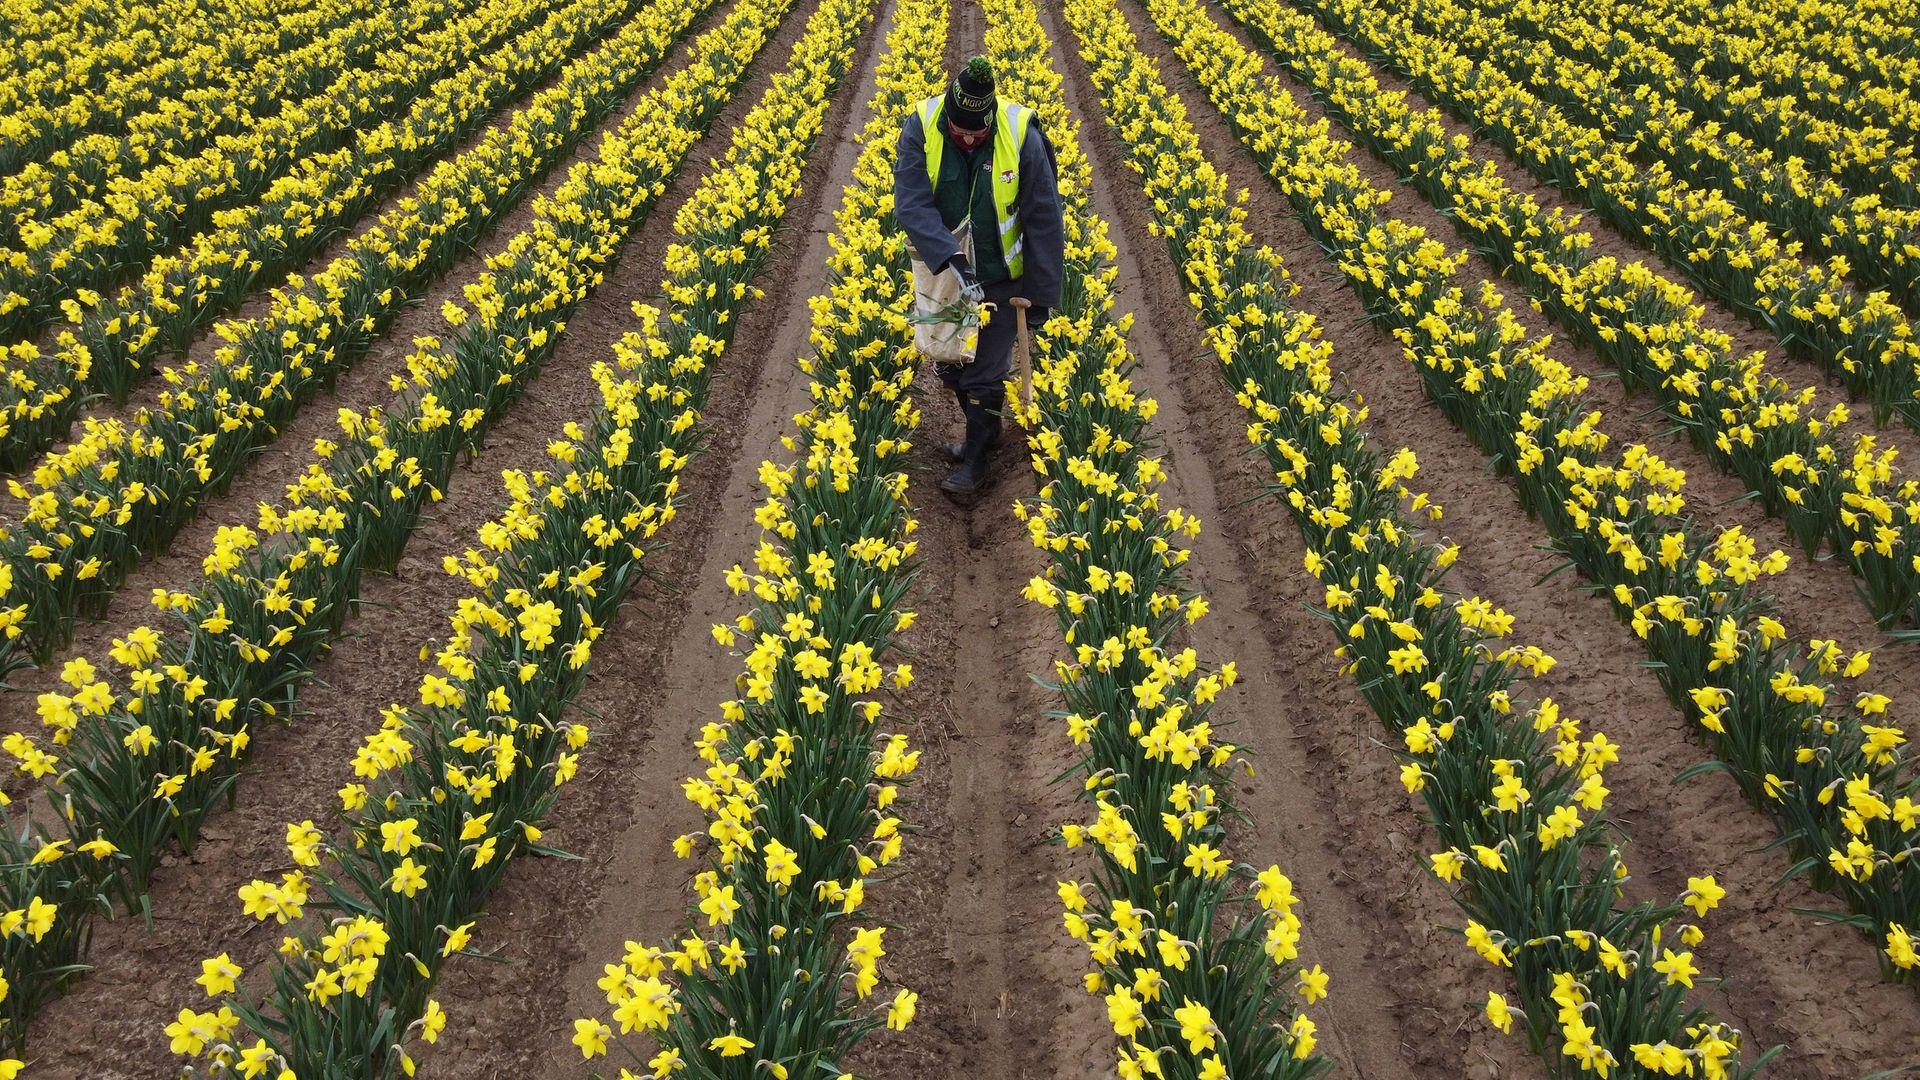 A worker rogues a field of daffodils at Taylors Bulbs near Holbeach in Lincolnshire, where the fourth generation family firm plant over 35 millions bulbs and harvest around 2.5 million cut daffodil flowers each year - Credit: PA